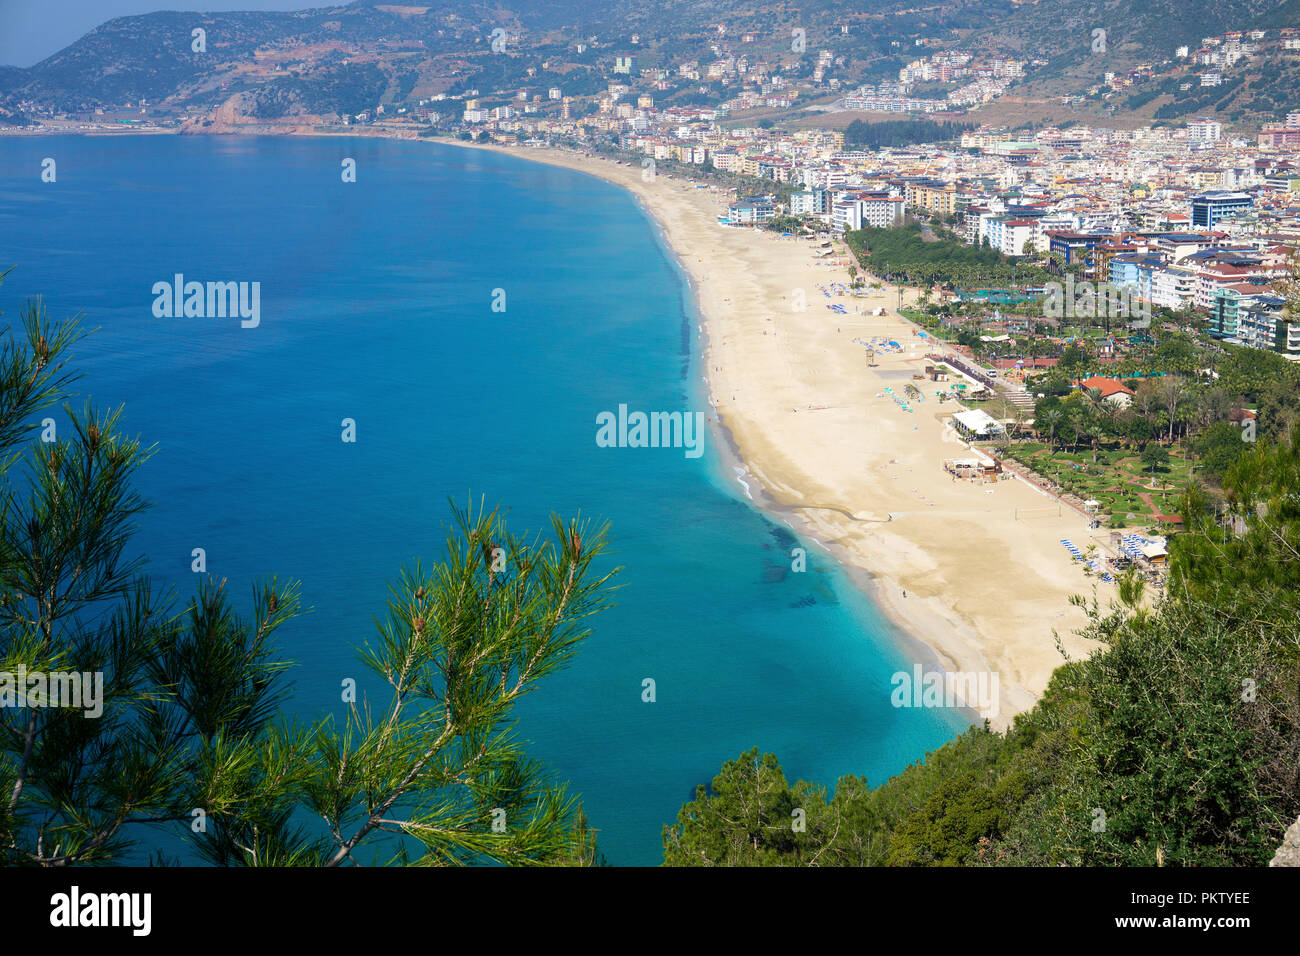 Cleopatra beach, city beach in Alanya, seaside resort on the Turkish Riviera, Turkey - Stock Image